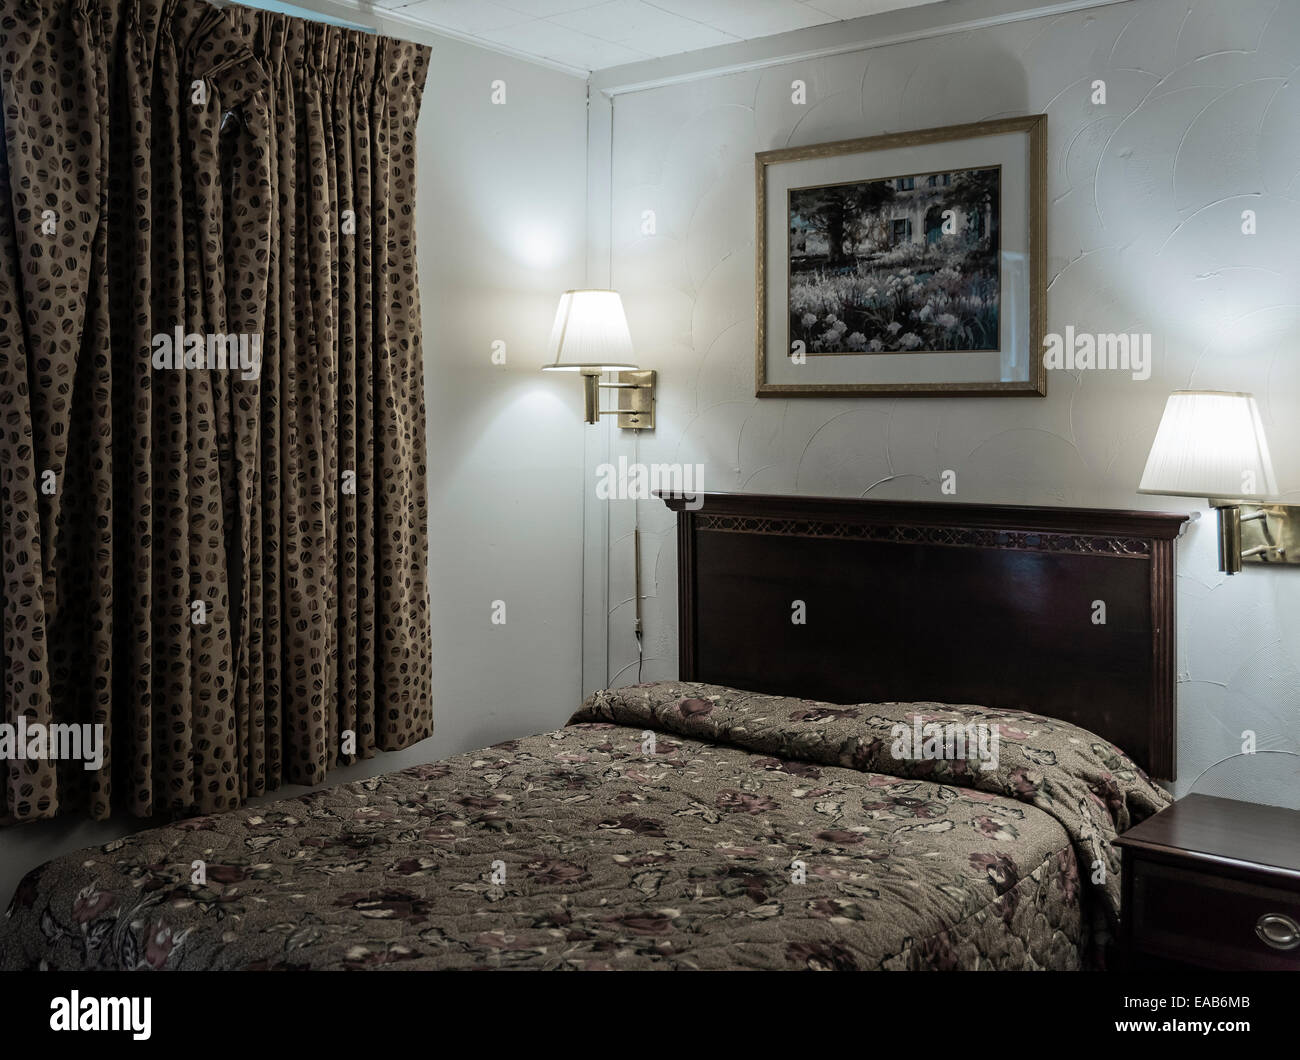 Cheap hotel room. - Stock Image